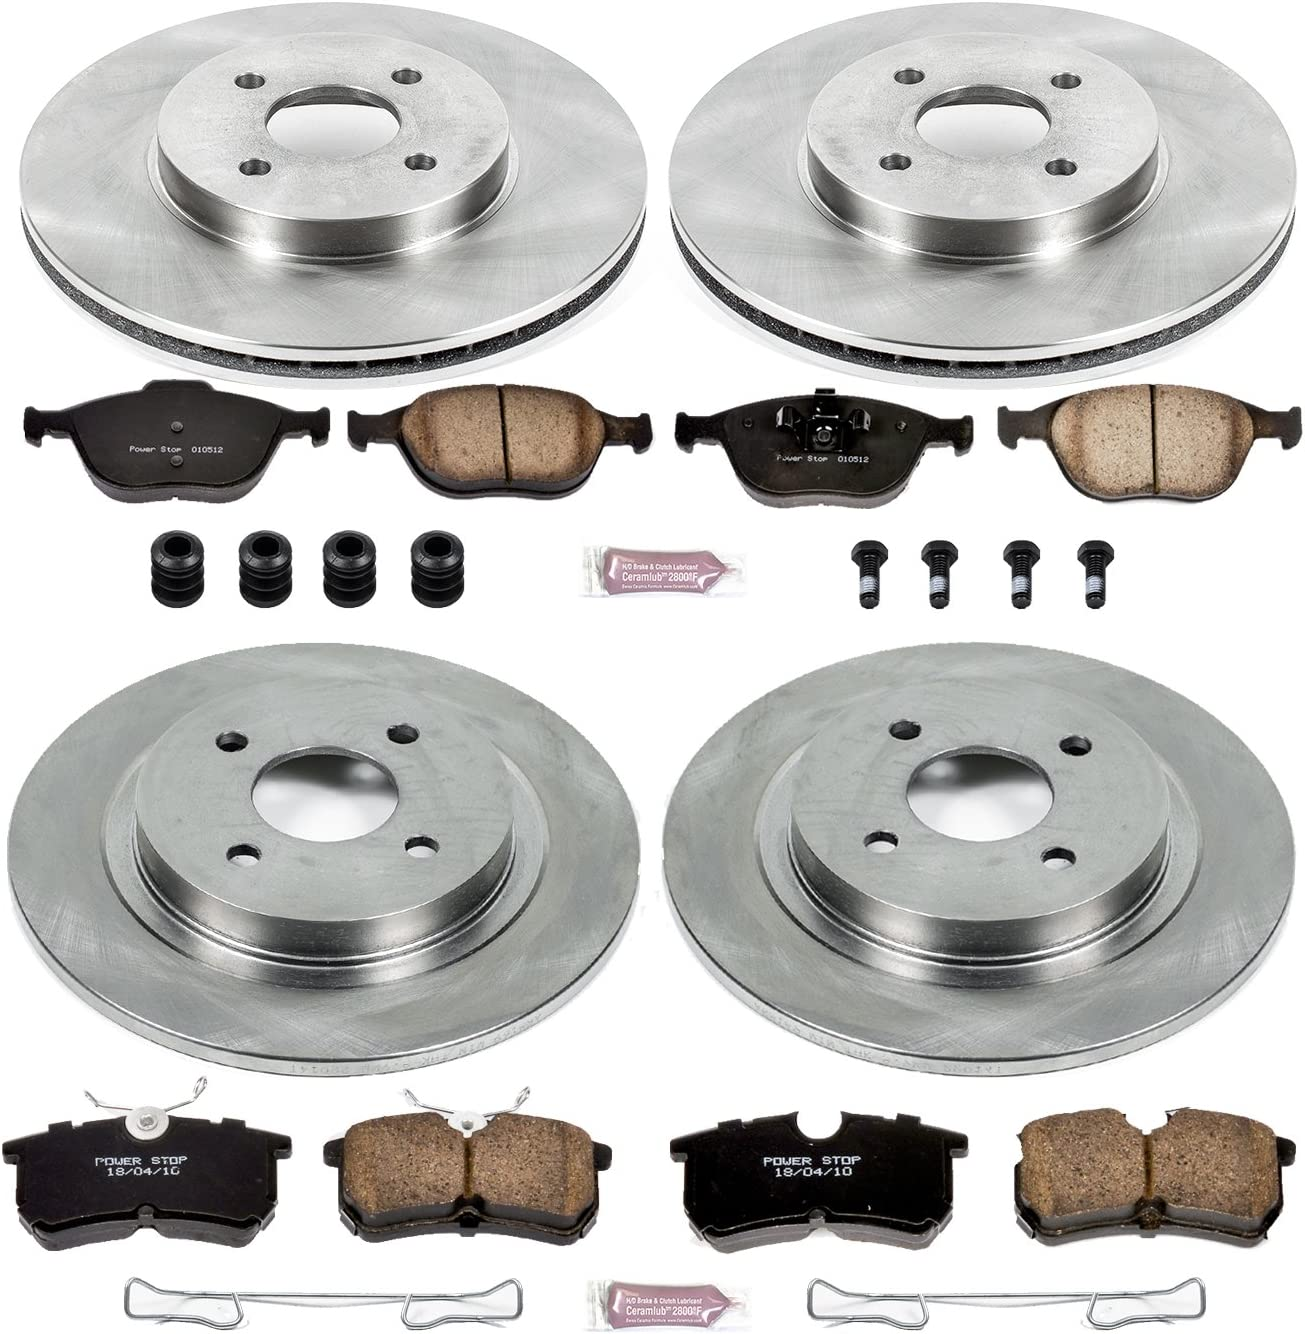 2005 2006 2007 Ford Focus Non SVT OE Replacement Rotors Metallic Pads F